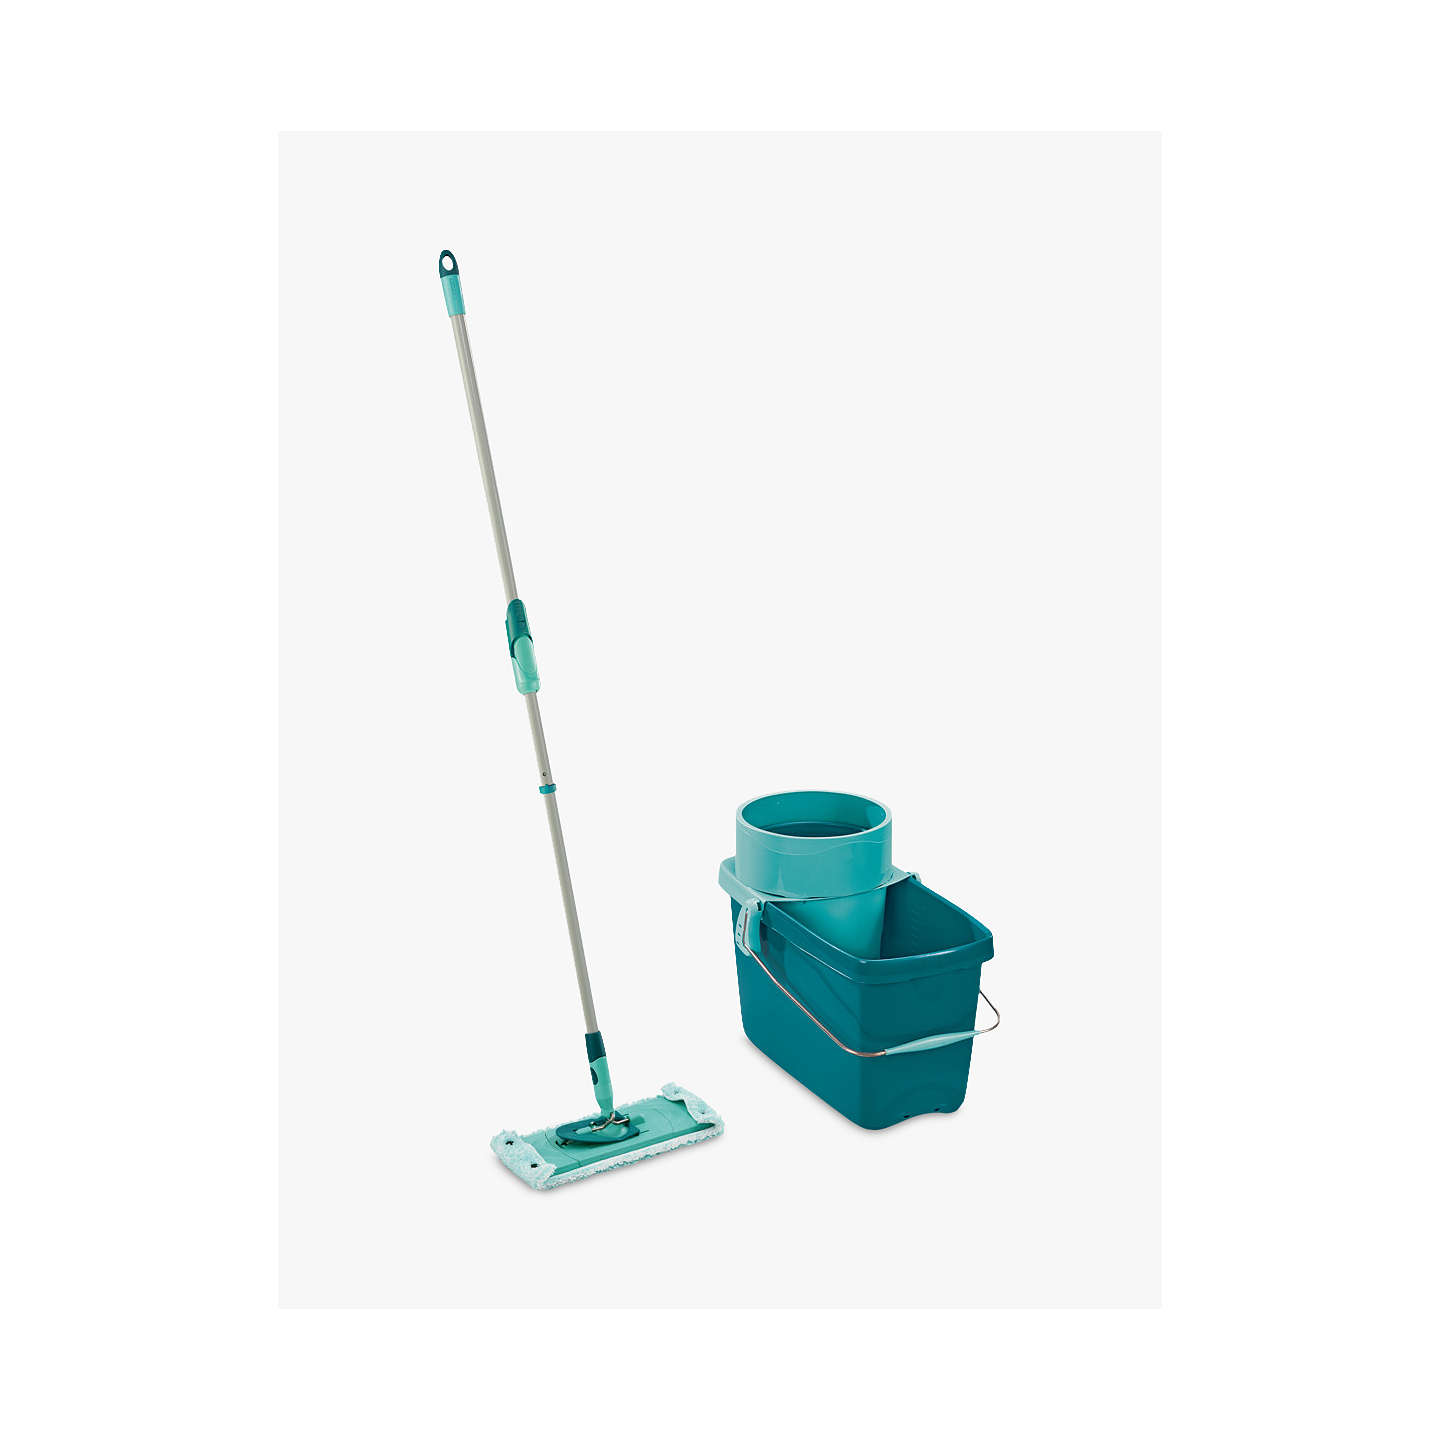 leifheit clean twist extra soft system mop and bucket at john lewis. Black Bedroom Furniture Sets. Home Design Ideas